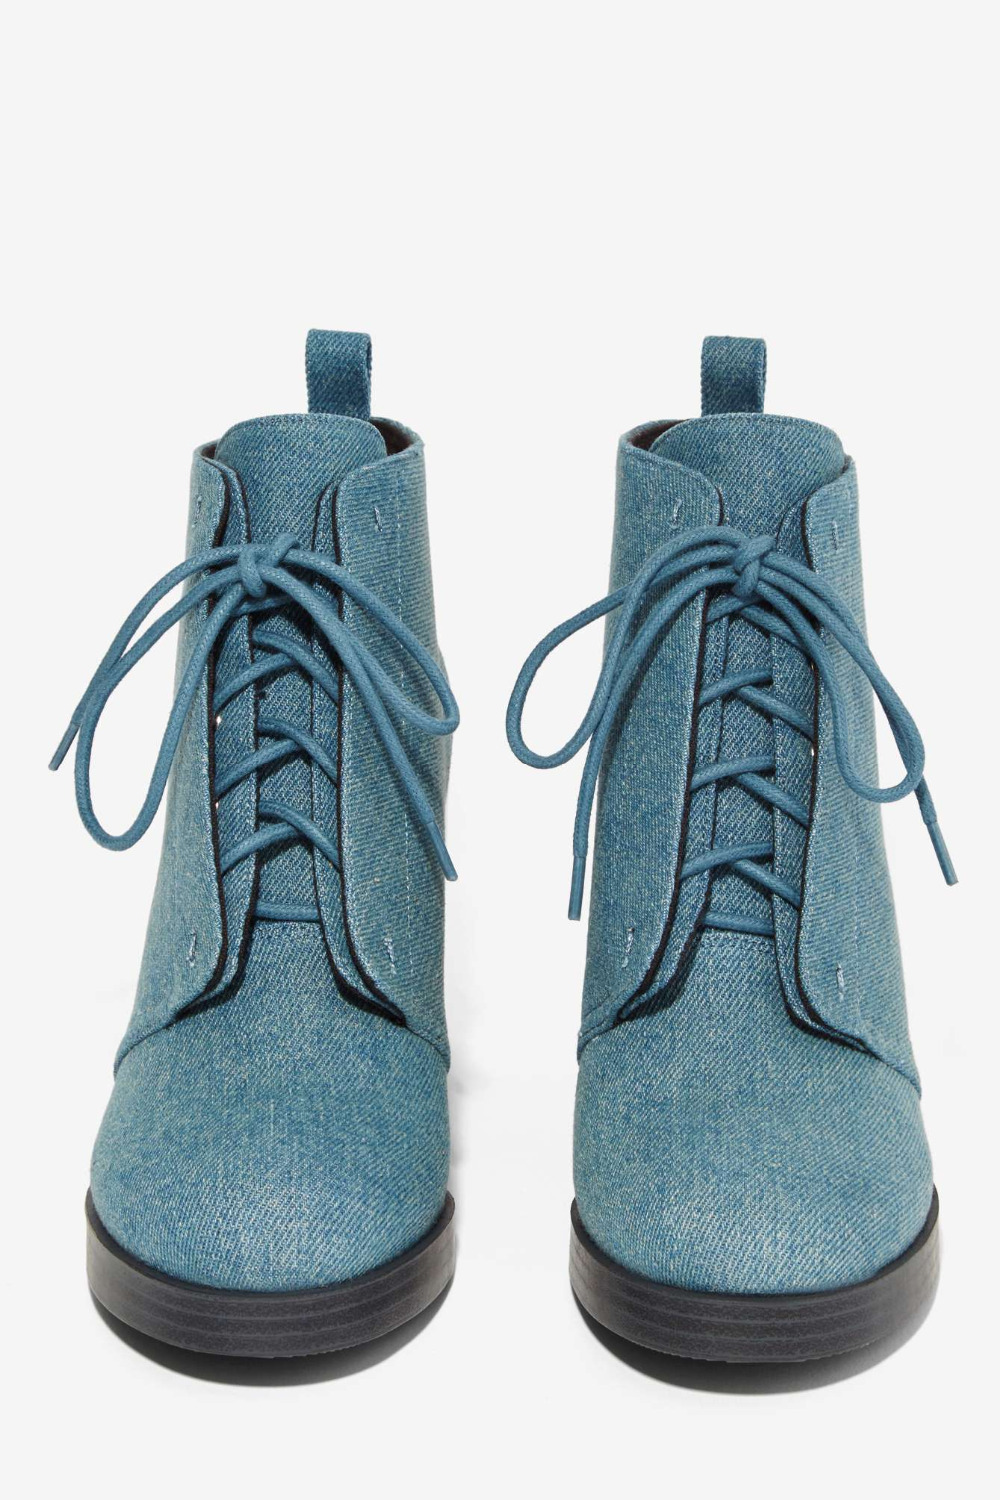 BC shoesSynthetic Round toe Ankle Fashion Boots<br><br>Aliexpress